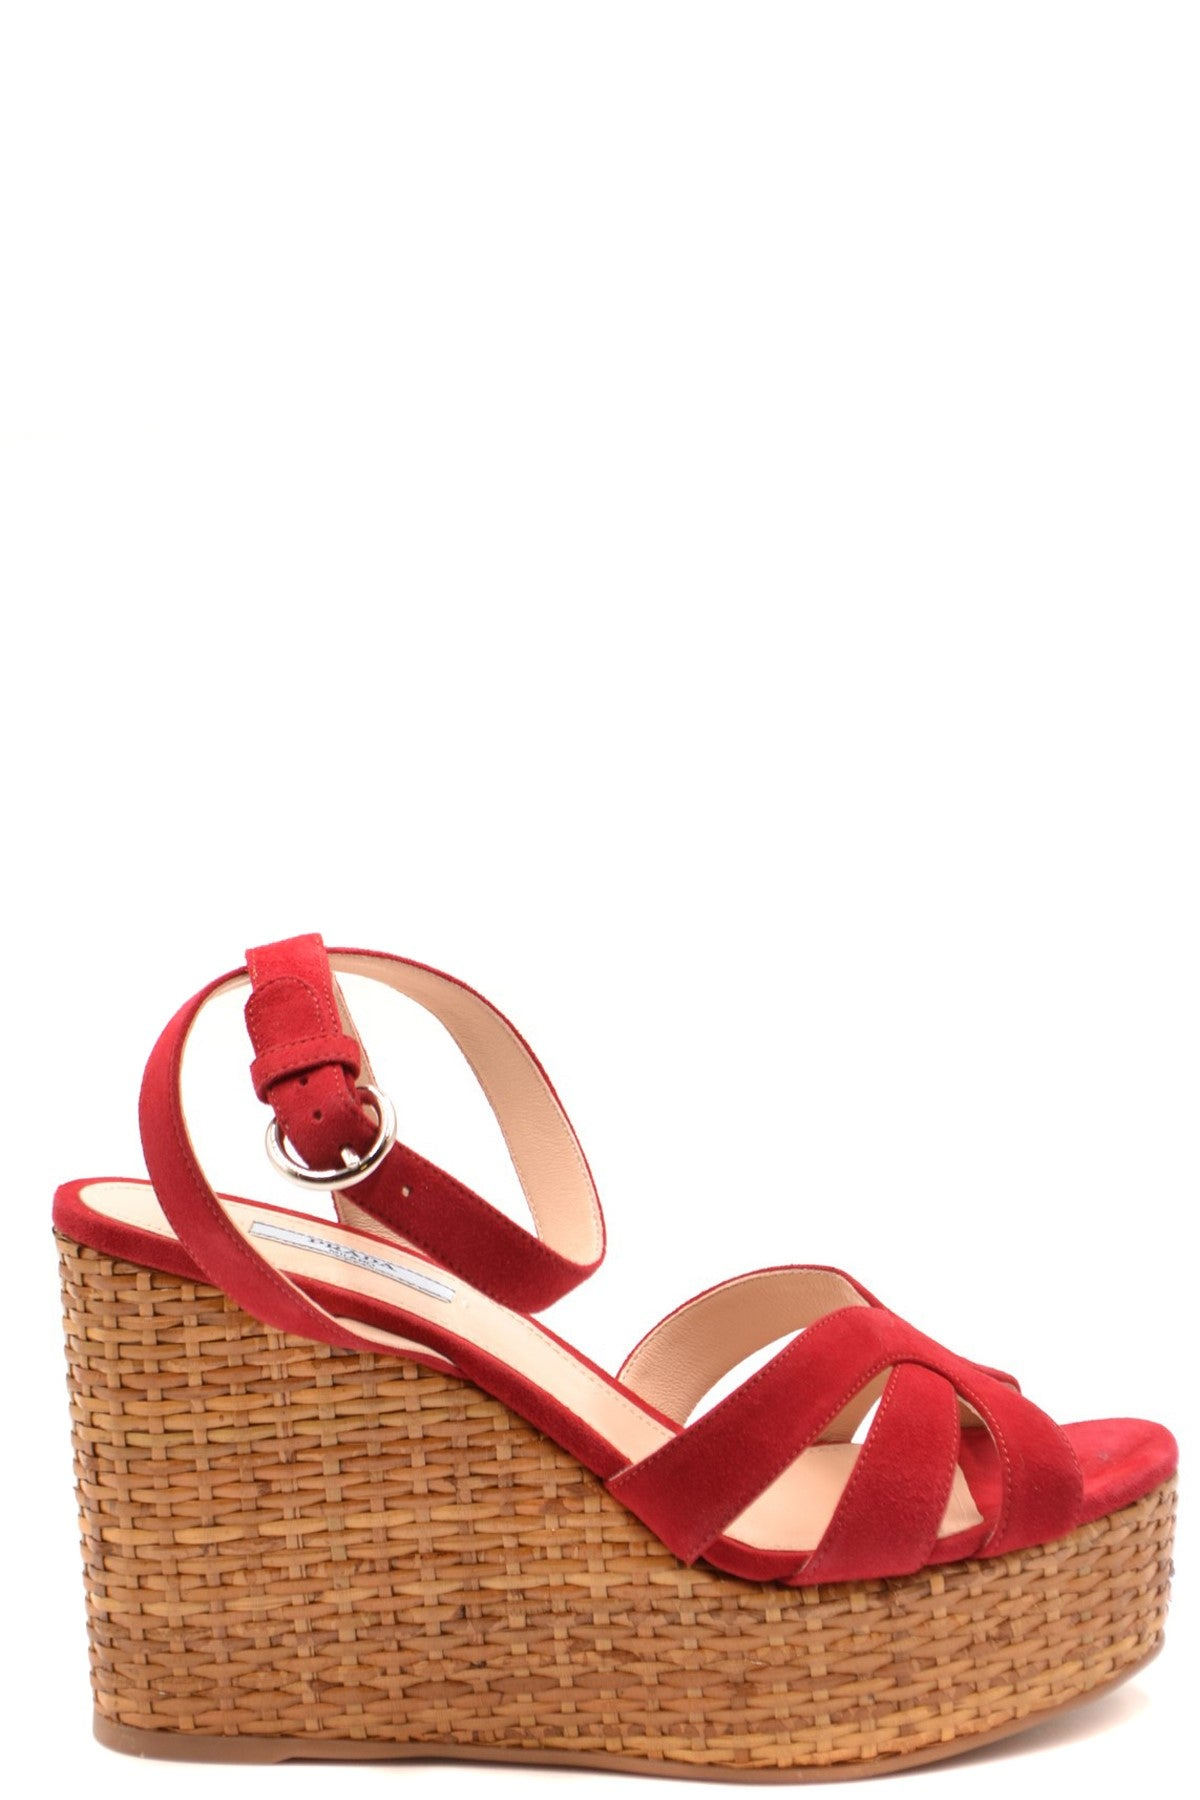 Shoes Prada-Women's Fashion - Women's Shoes - Women's Sandals-36-Product Details Terms: New With LabelMain Color: RedType Of Accessory: ShoesSeason: Spring / SummerMade In: ItalyGender: WomanSize: EuComposition: Chamois 100%Year: 2020Manufacturer Part Number: 1Xz705008 F0E06-Keyomi-Sook